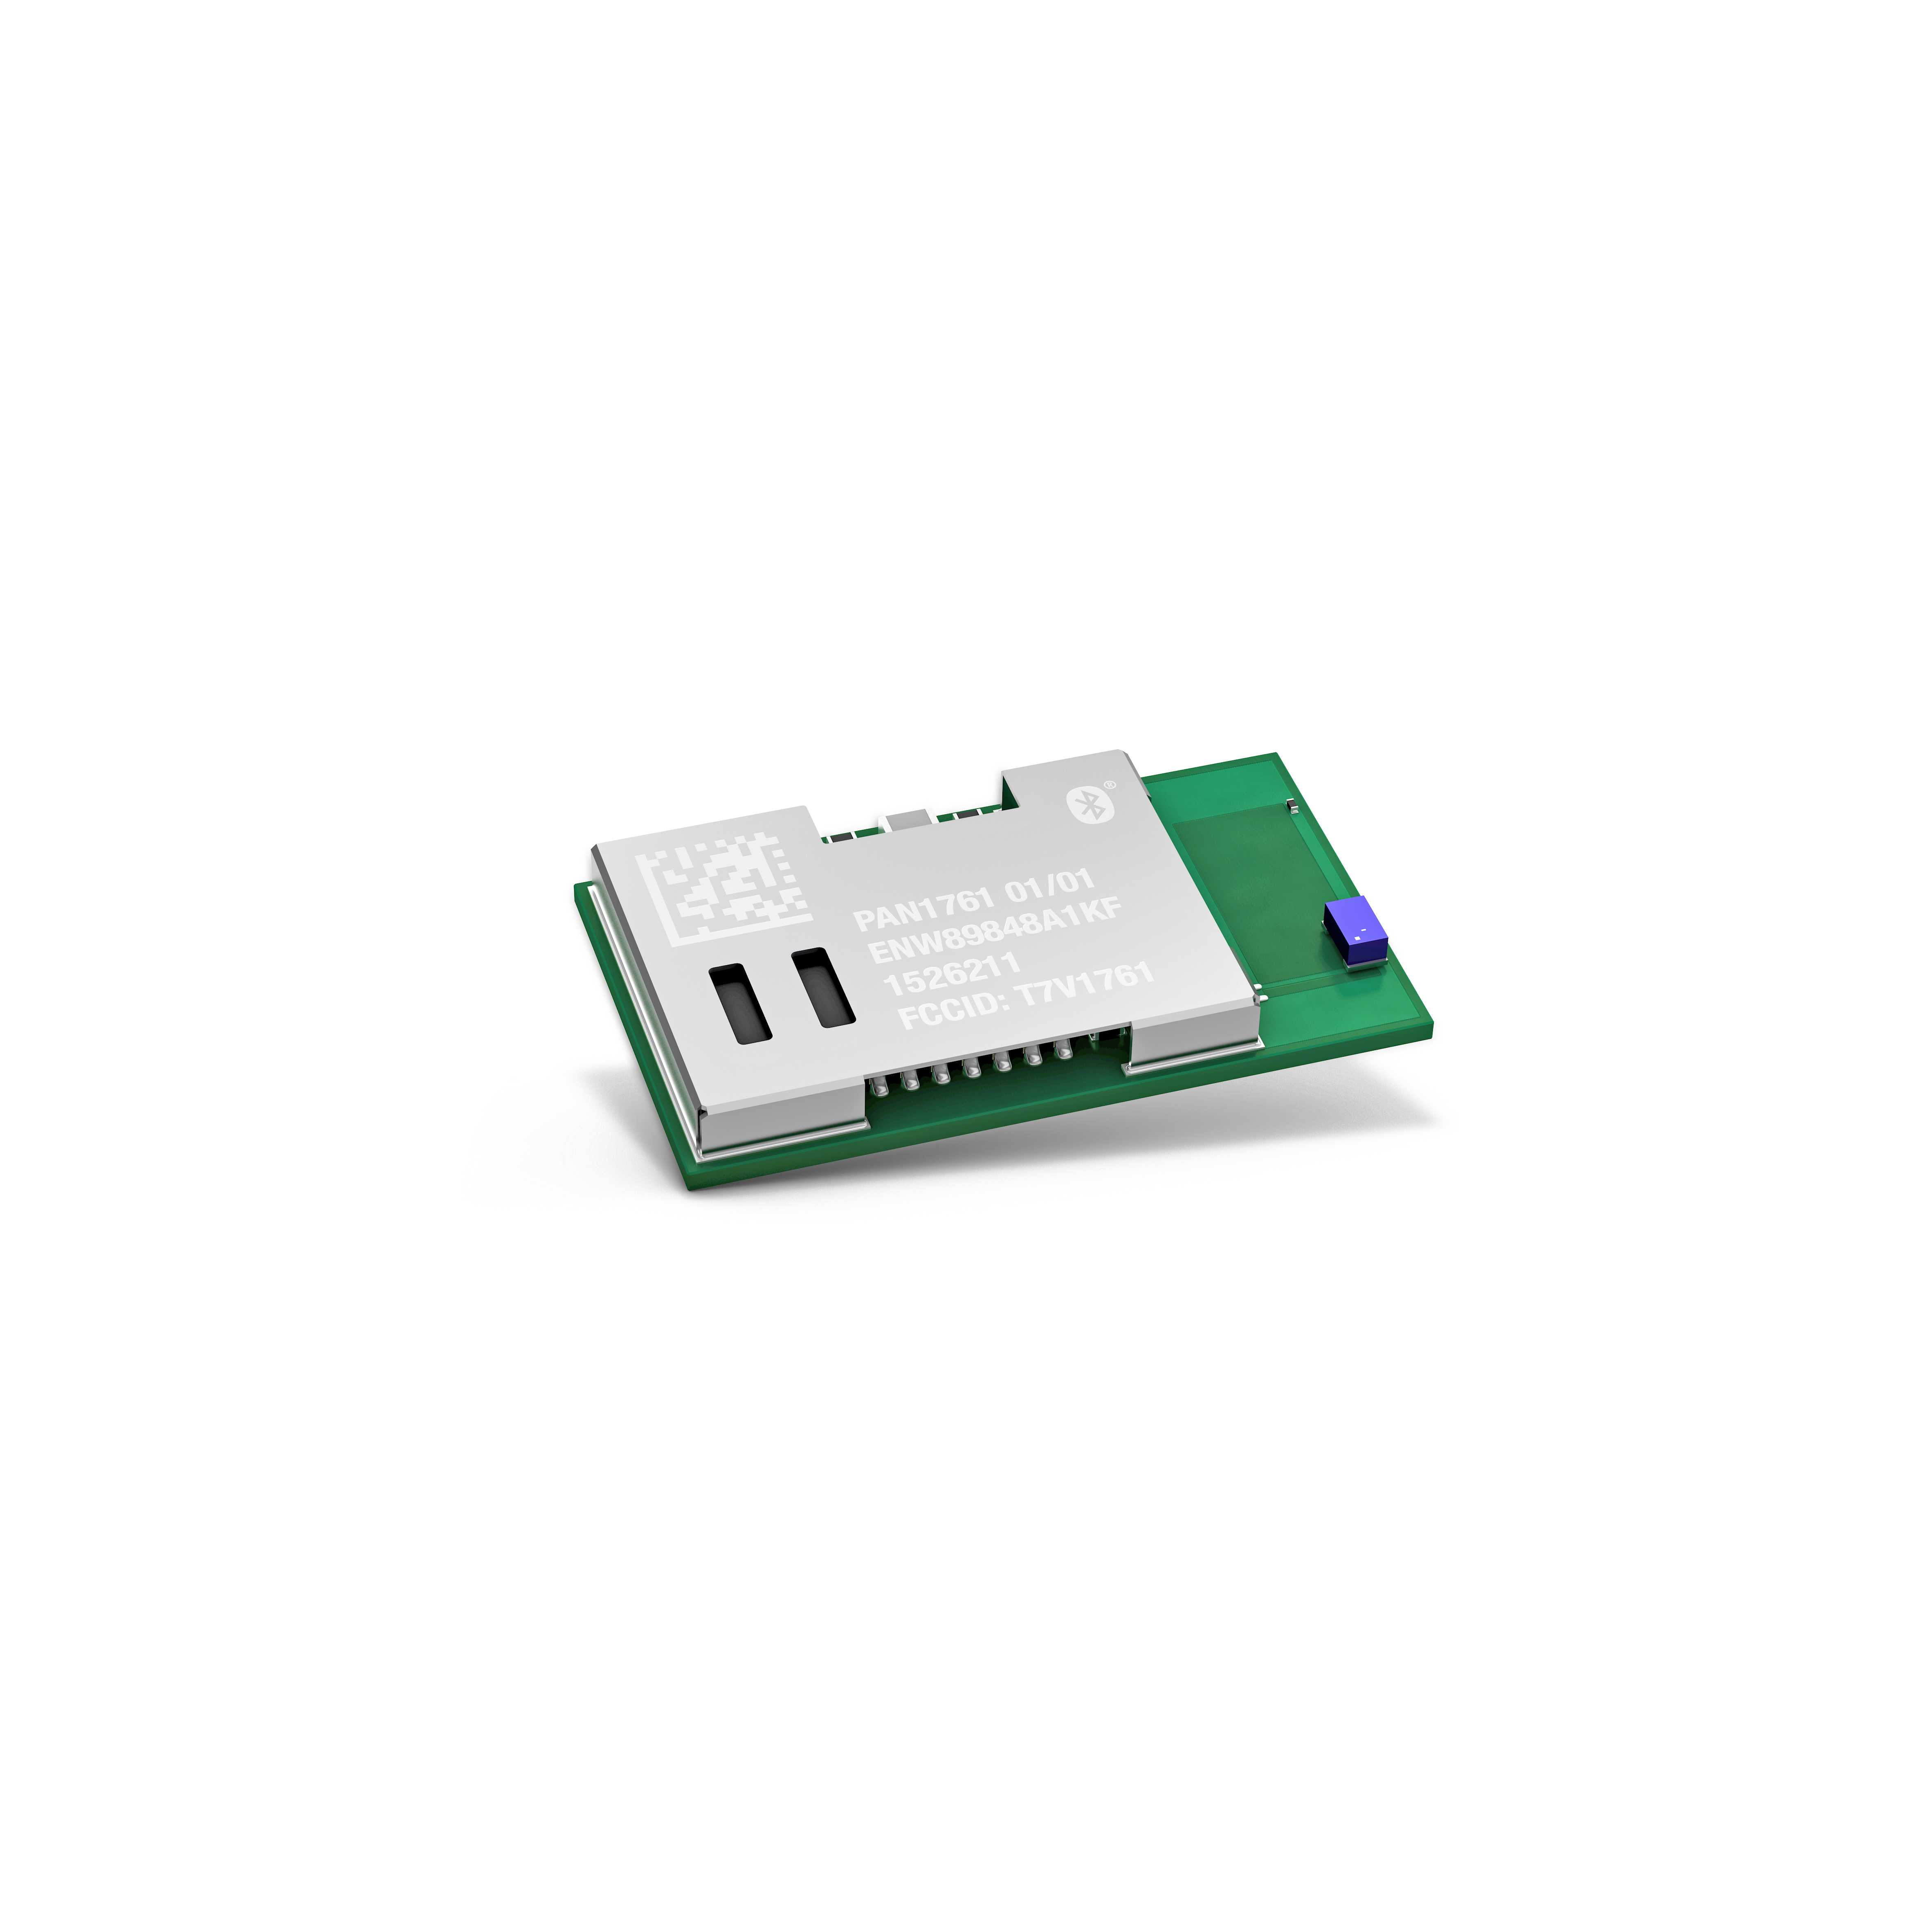 The low power consumption makes the new PAN1761 module the ideal choice for many applications, like healthcare.